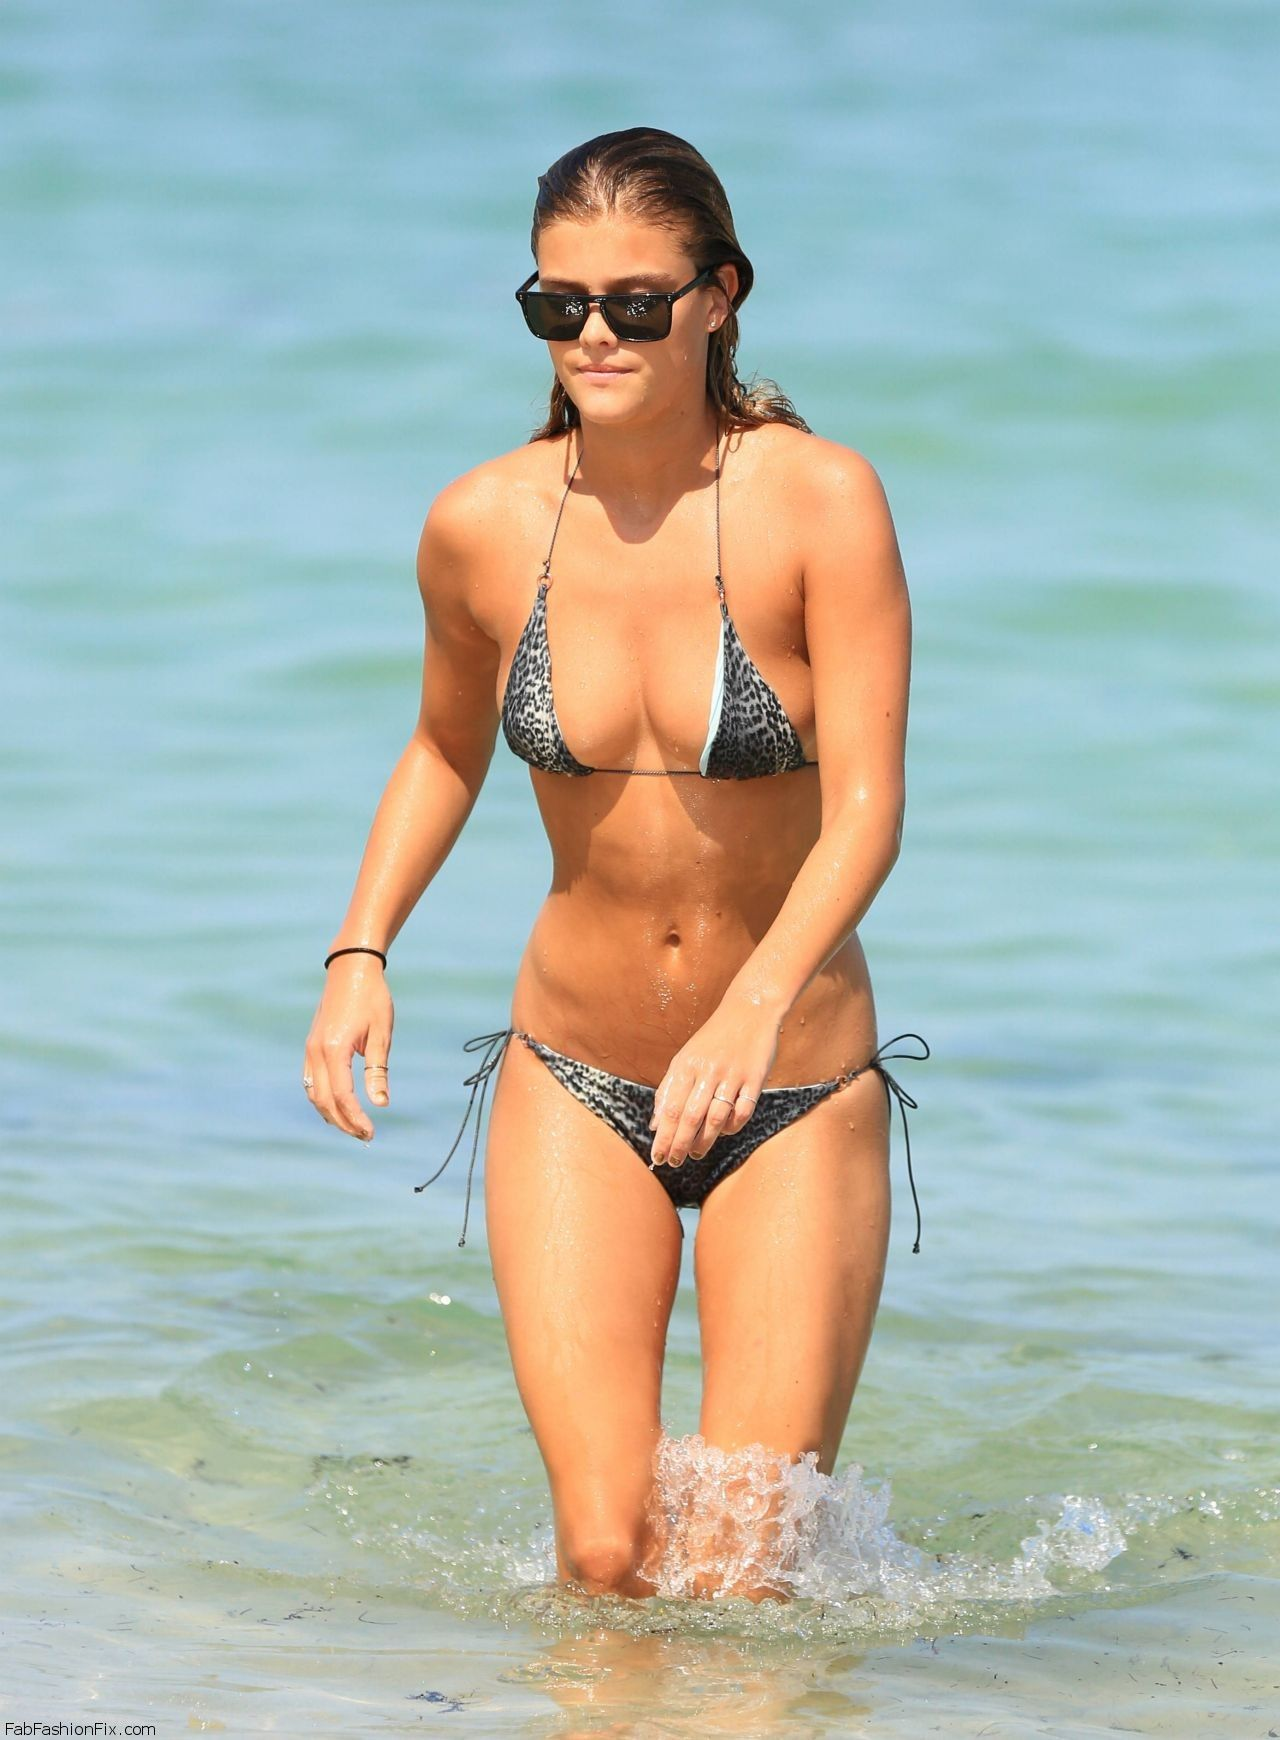 nina-agdal-hot-in-a-bikini-in-miami-july-2014_1